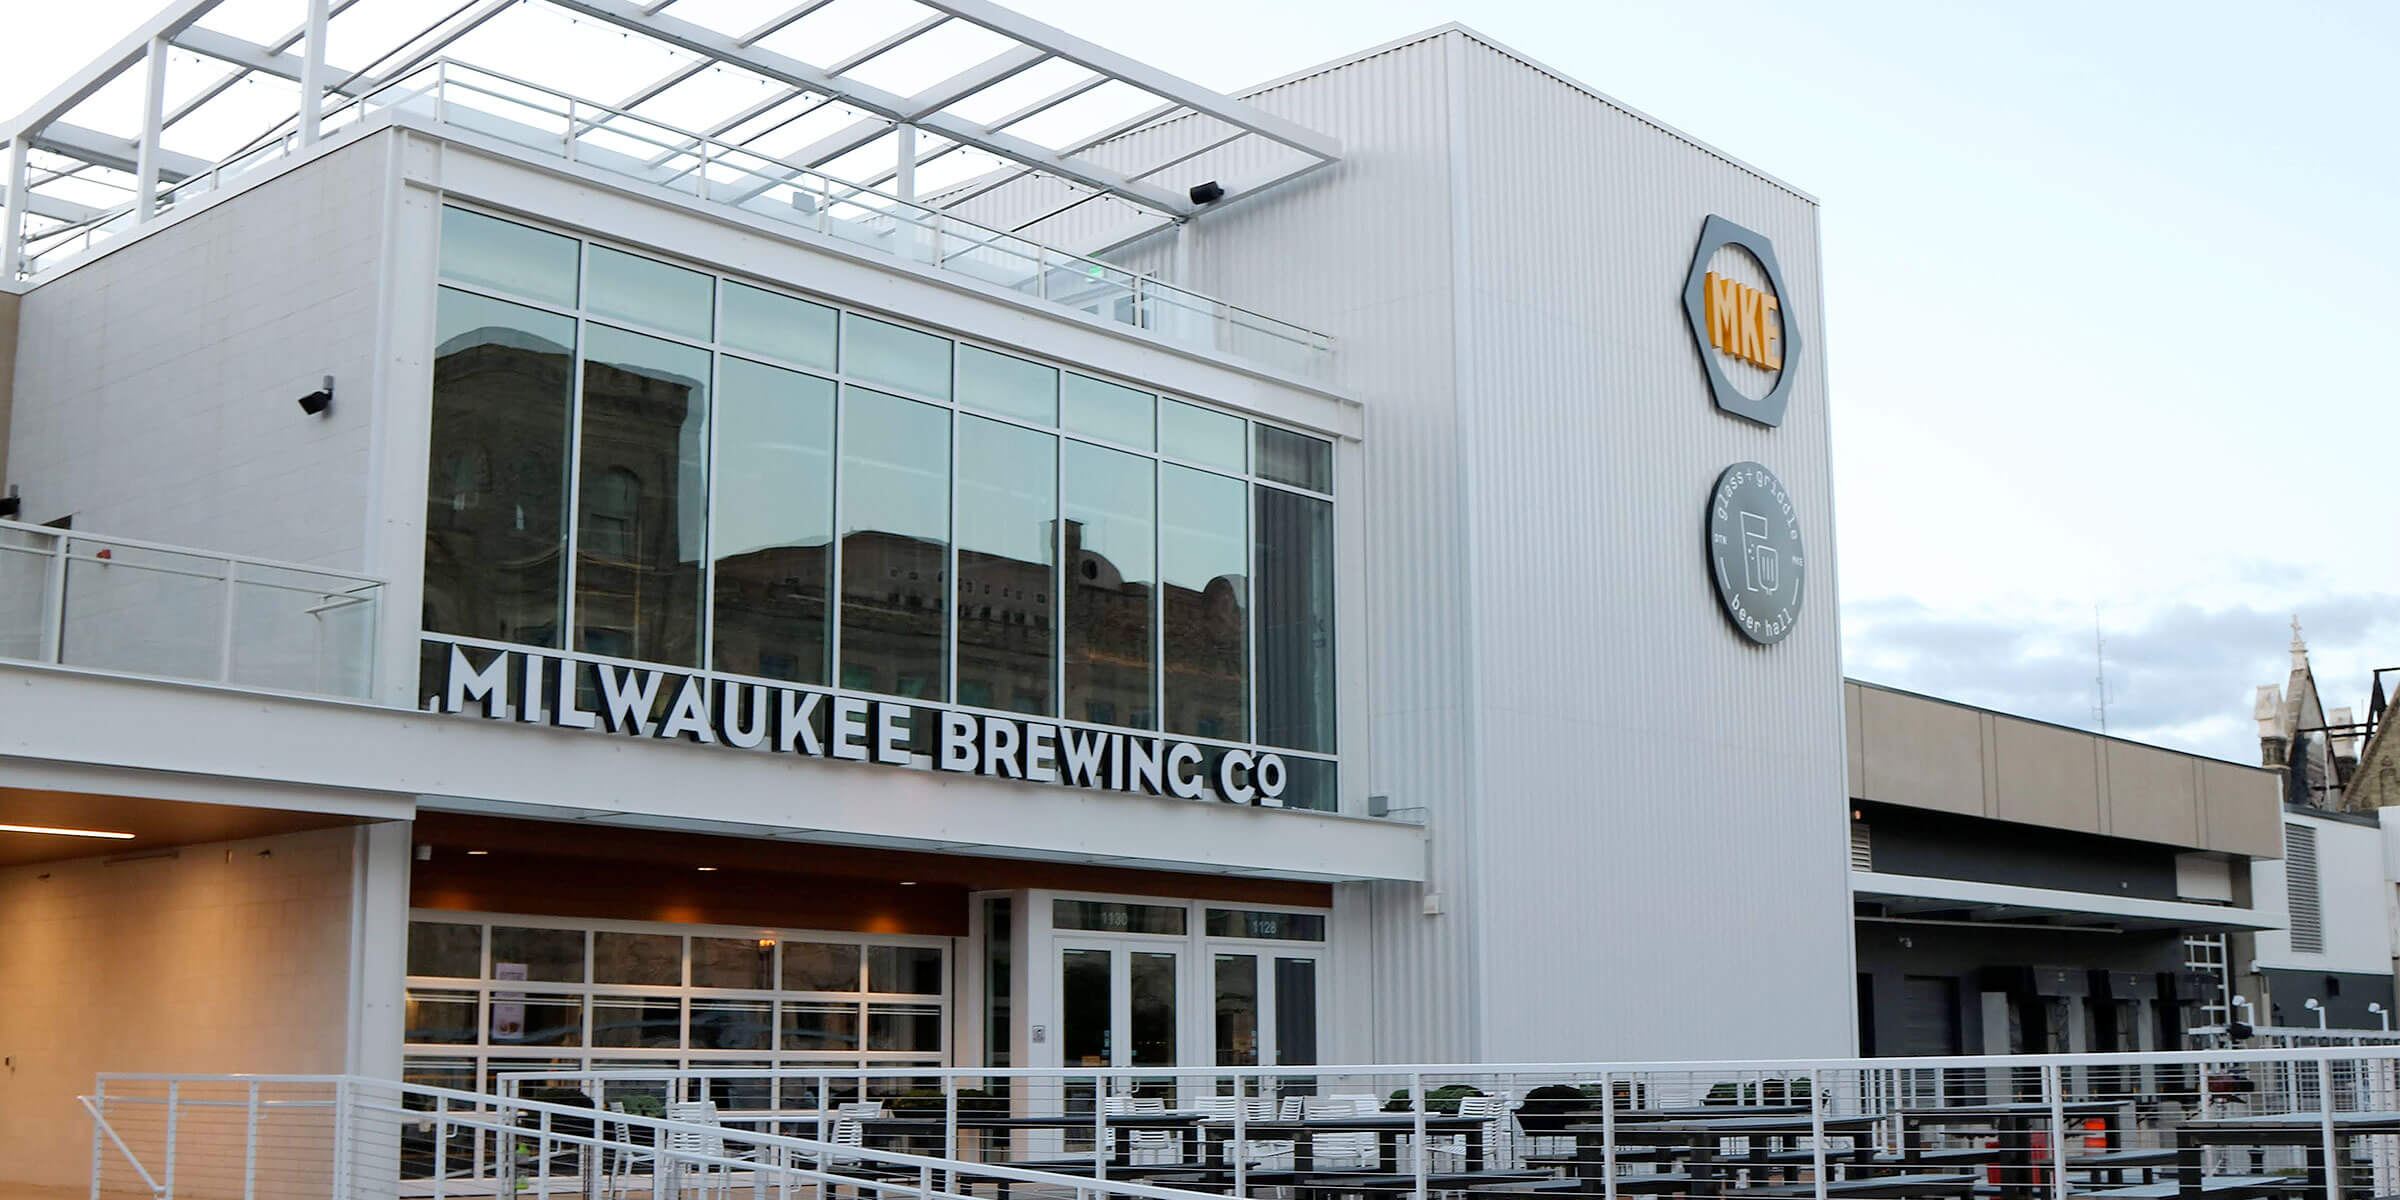 Outside the entrance to the MKE 9th Street location of Milwaukee Brewing Company in Milwaukee, Wisconsin